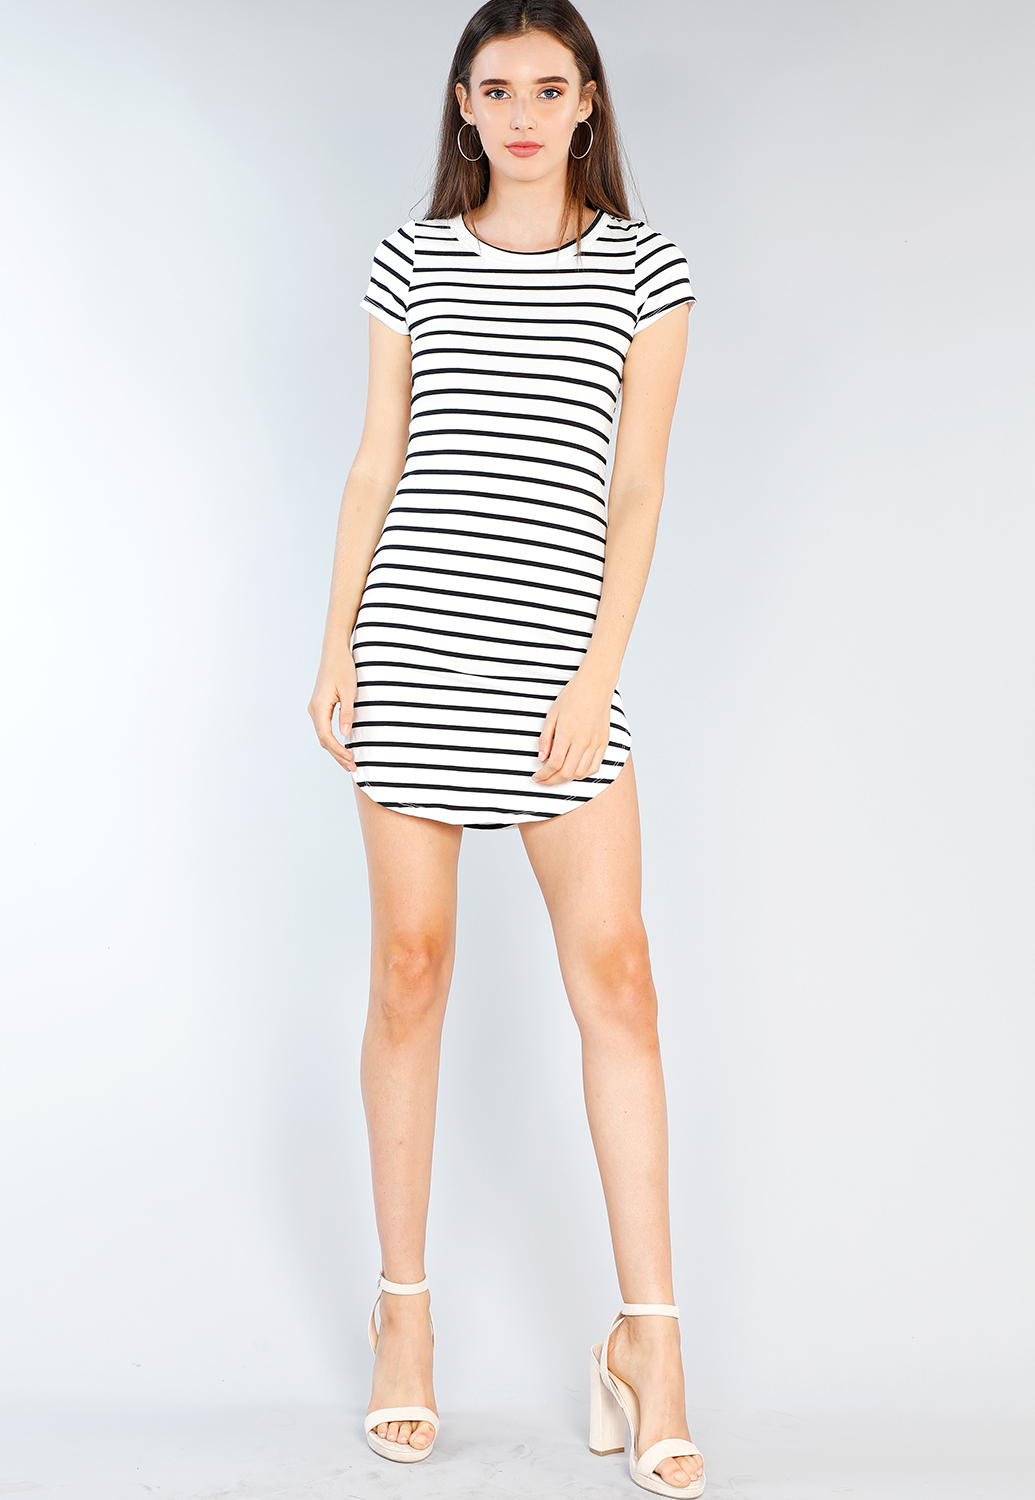 Striped Bodycon T Shirt Dress Shop Dressy Tops At Papaya Clothing